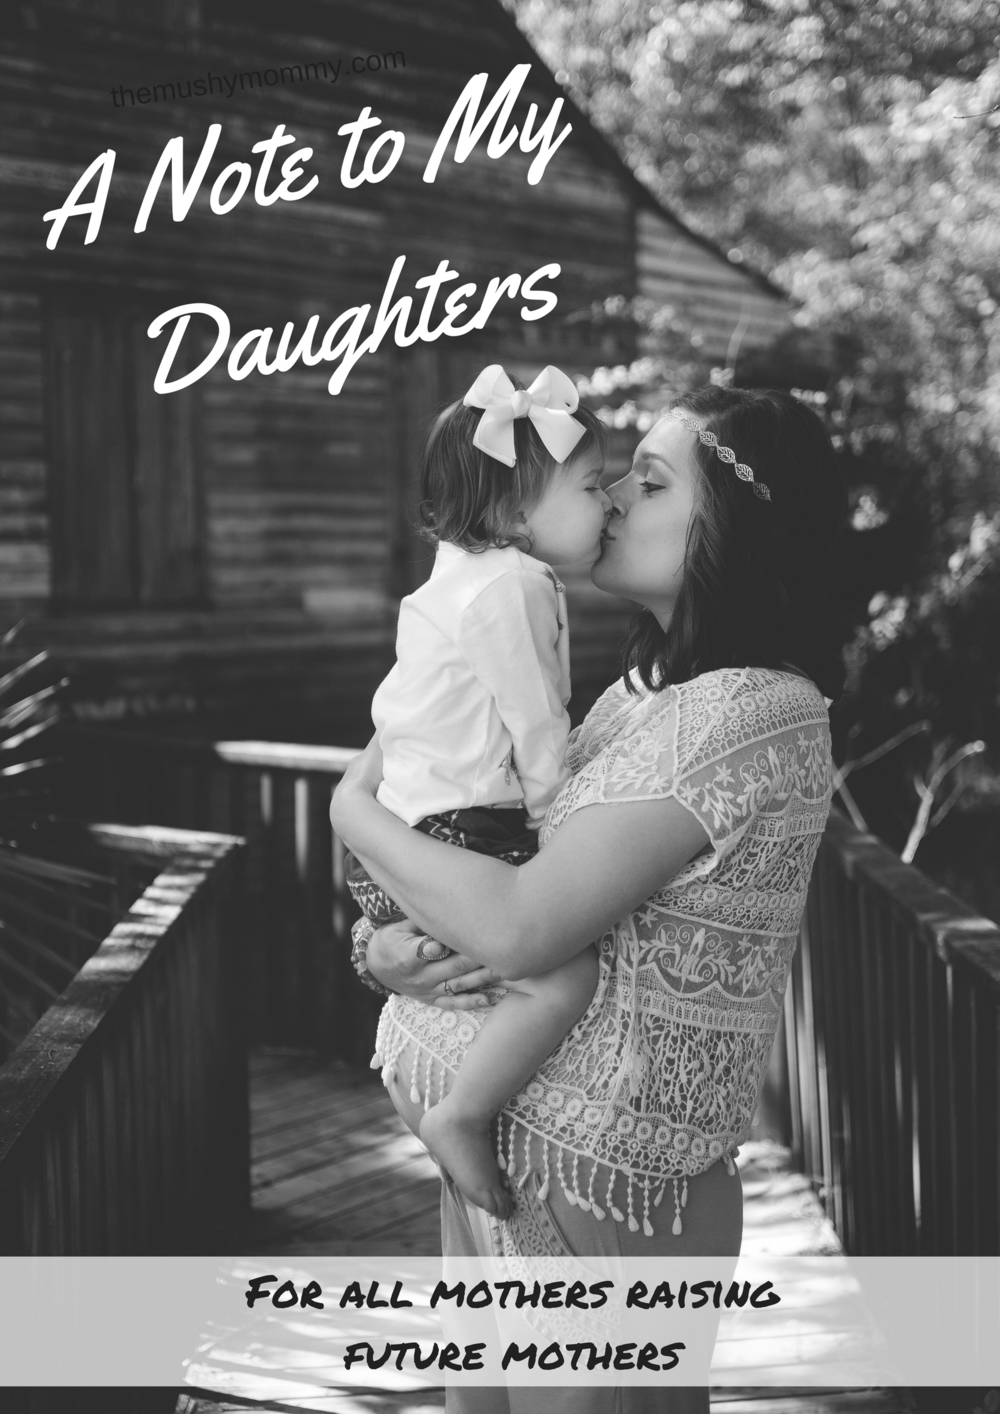 A Note to My Daughters